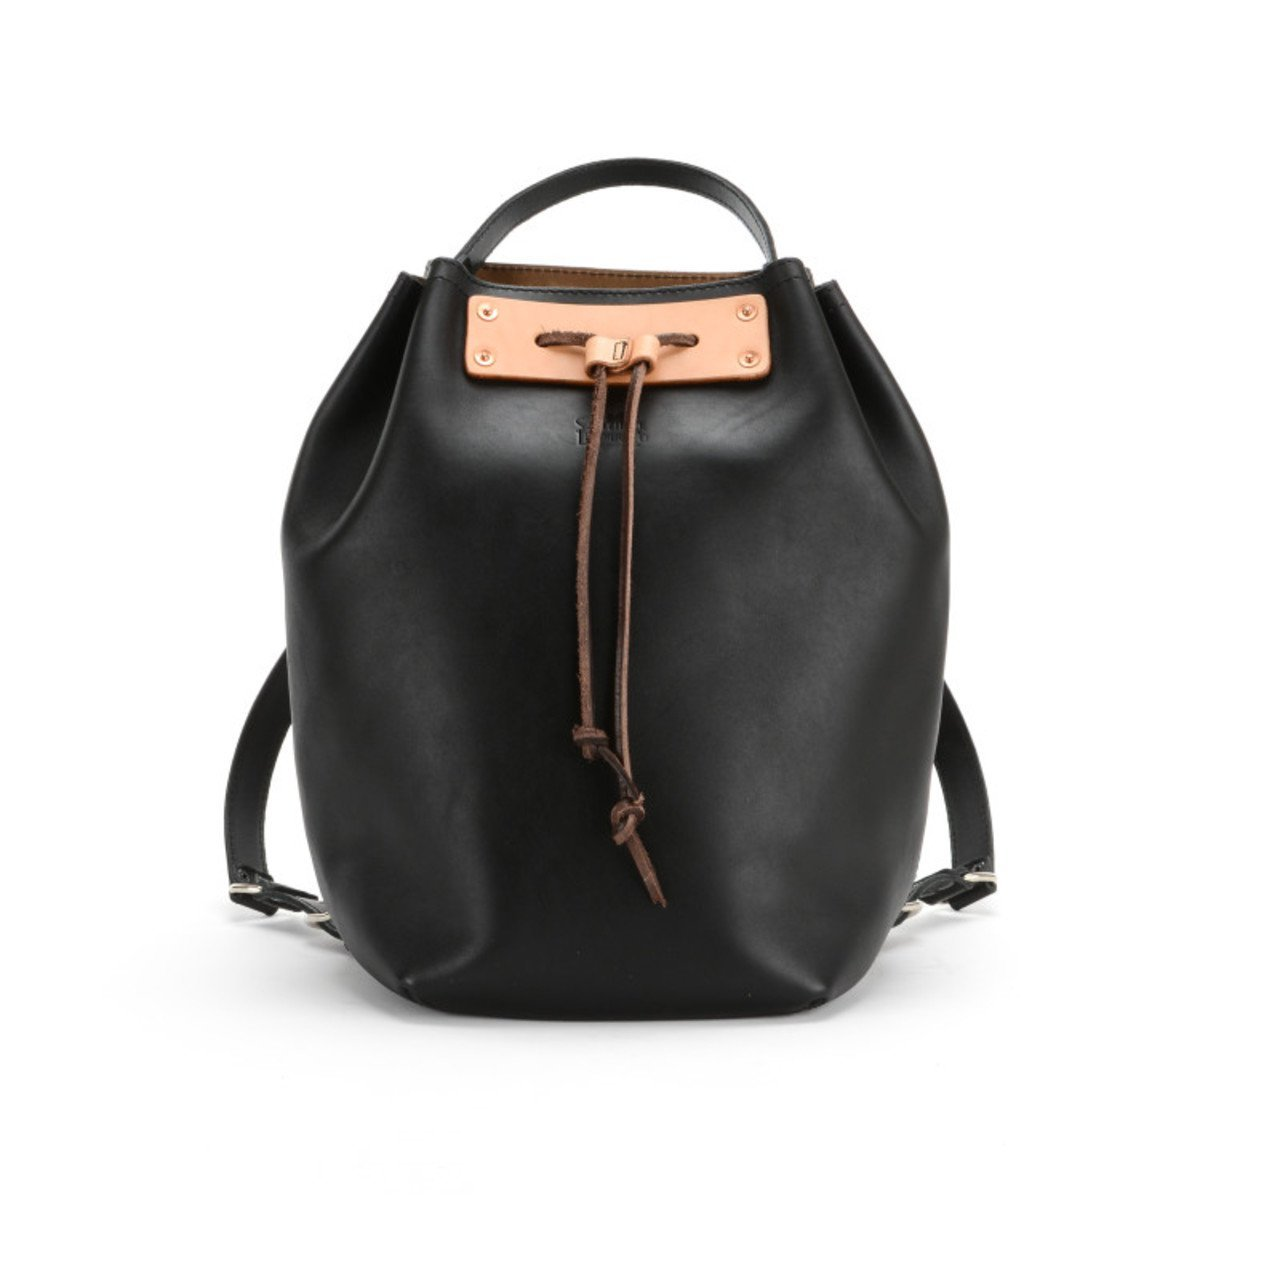 Saddleback Leather Bucket Backpack - Beautiful 100% Full Grain Leather Bag for School, Business or Travel with 100 Year Warranty